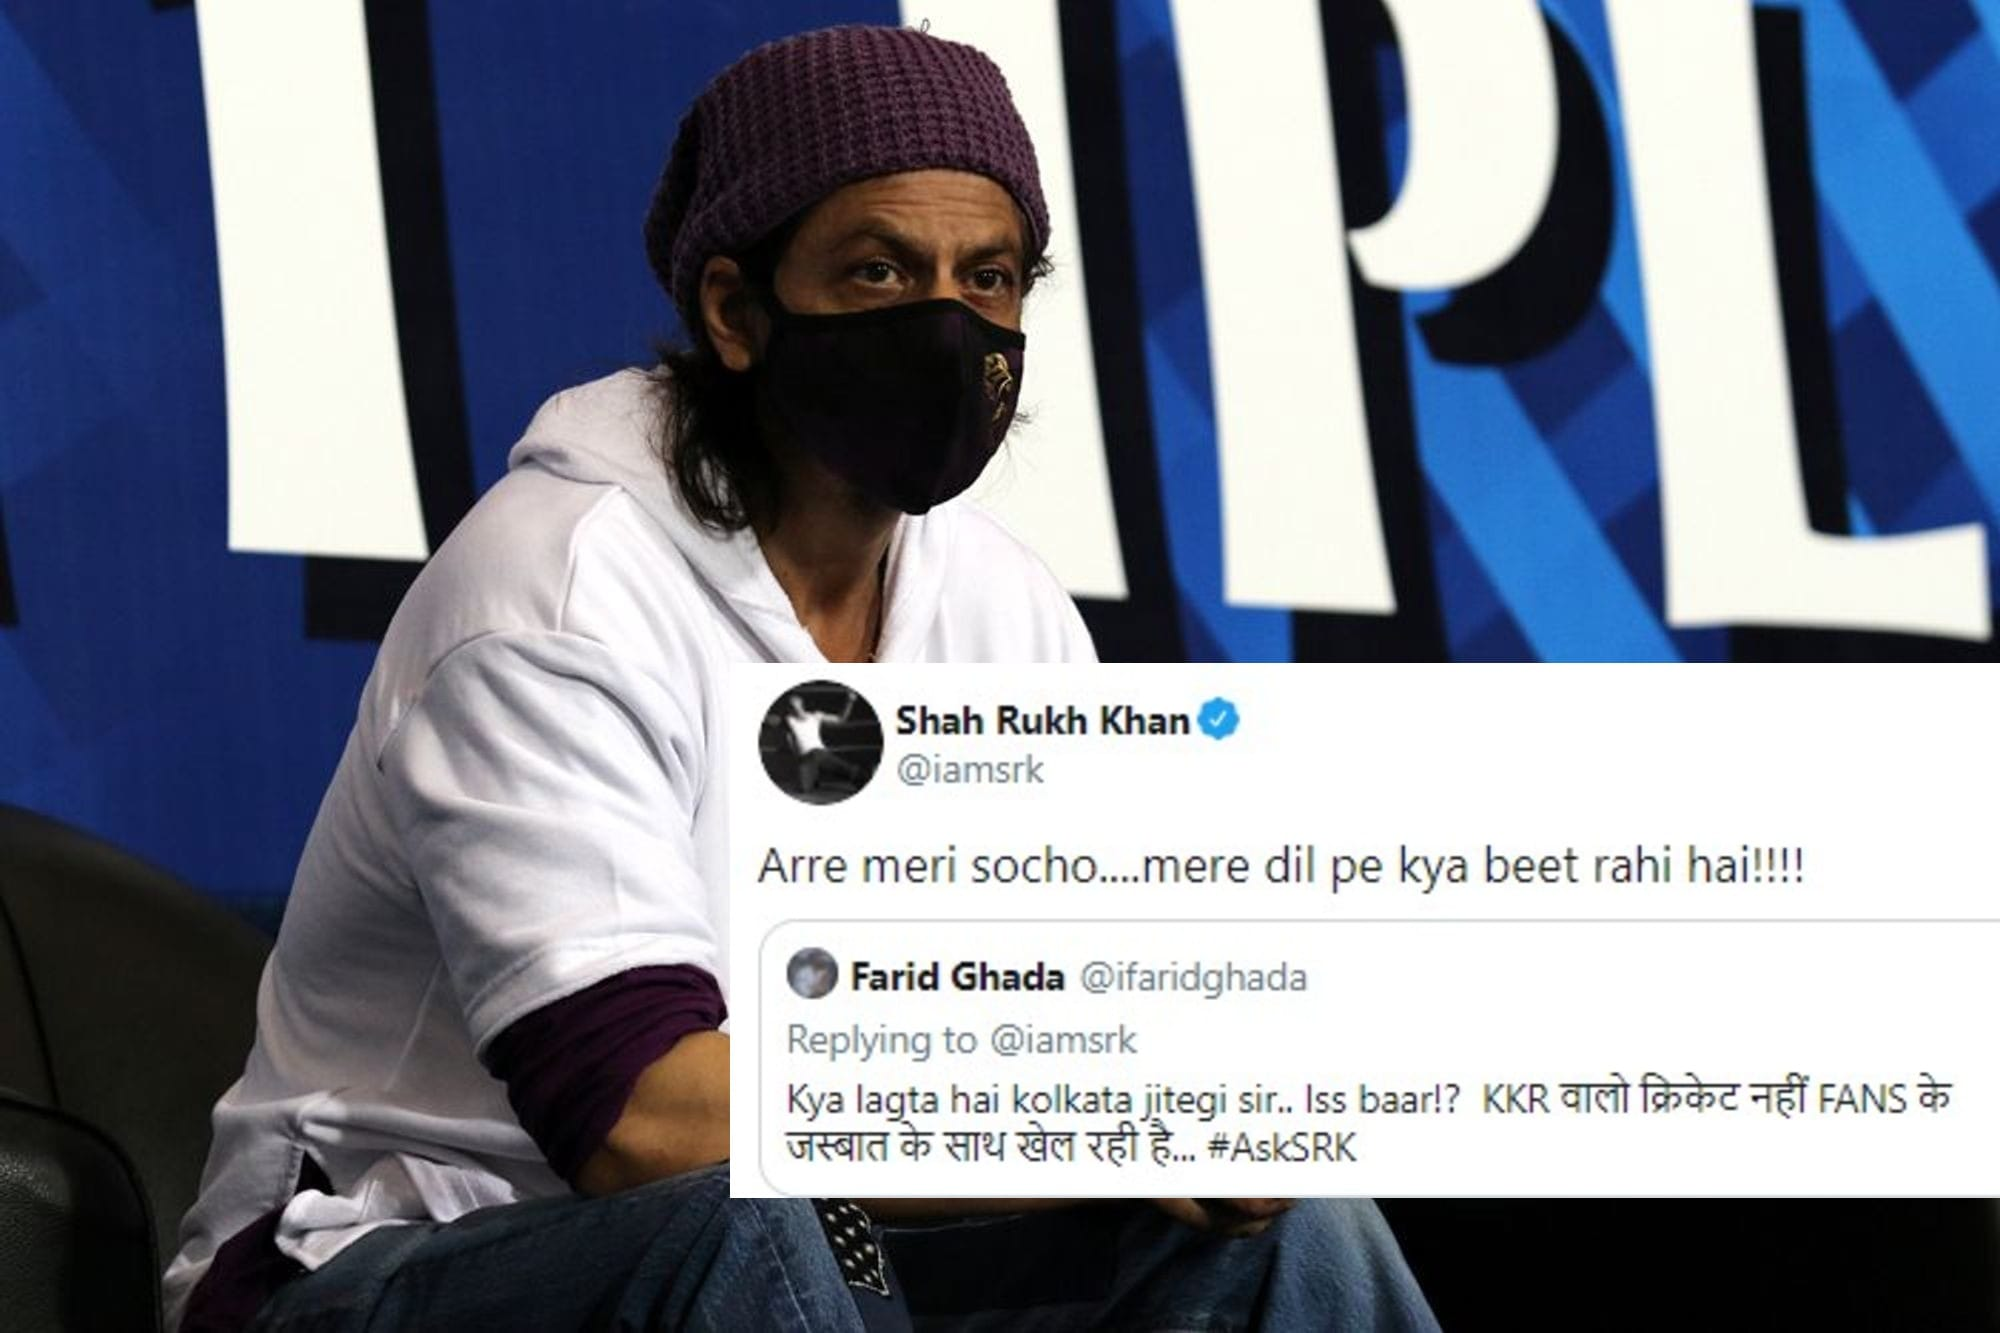 IPL 2020: Here is What Shah Rukh Khan Replied When asked if KKR Will Win the Tournament